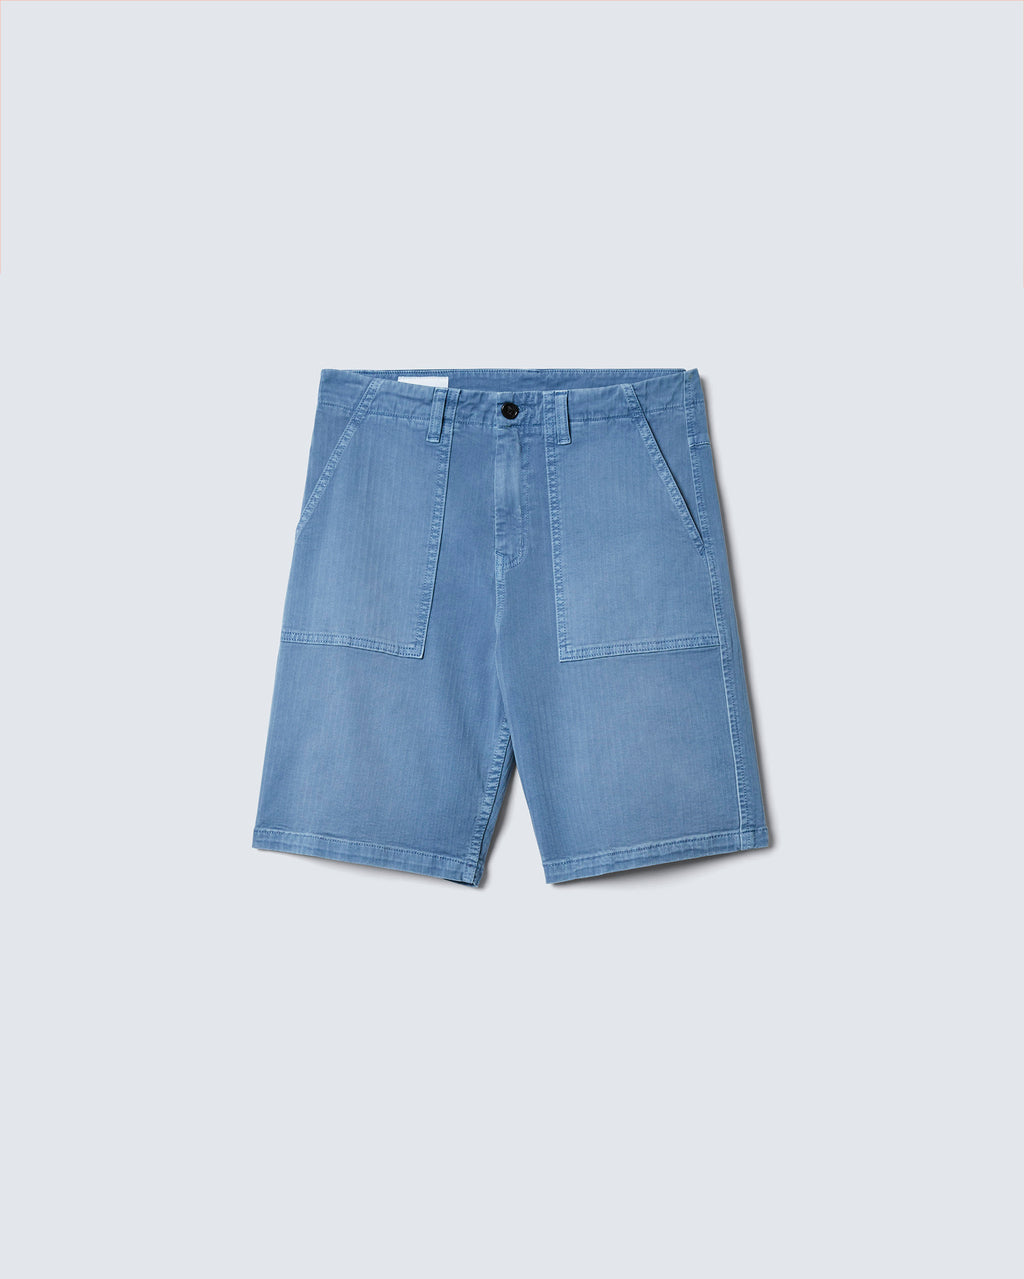 The Glenwood Short in Vintage Indigo